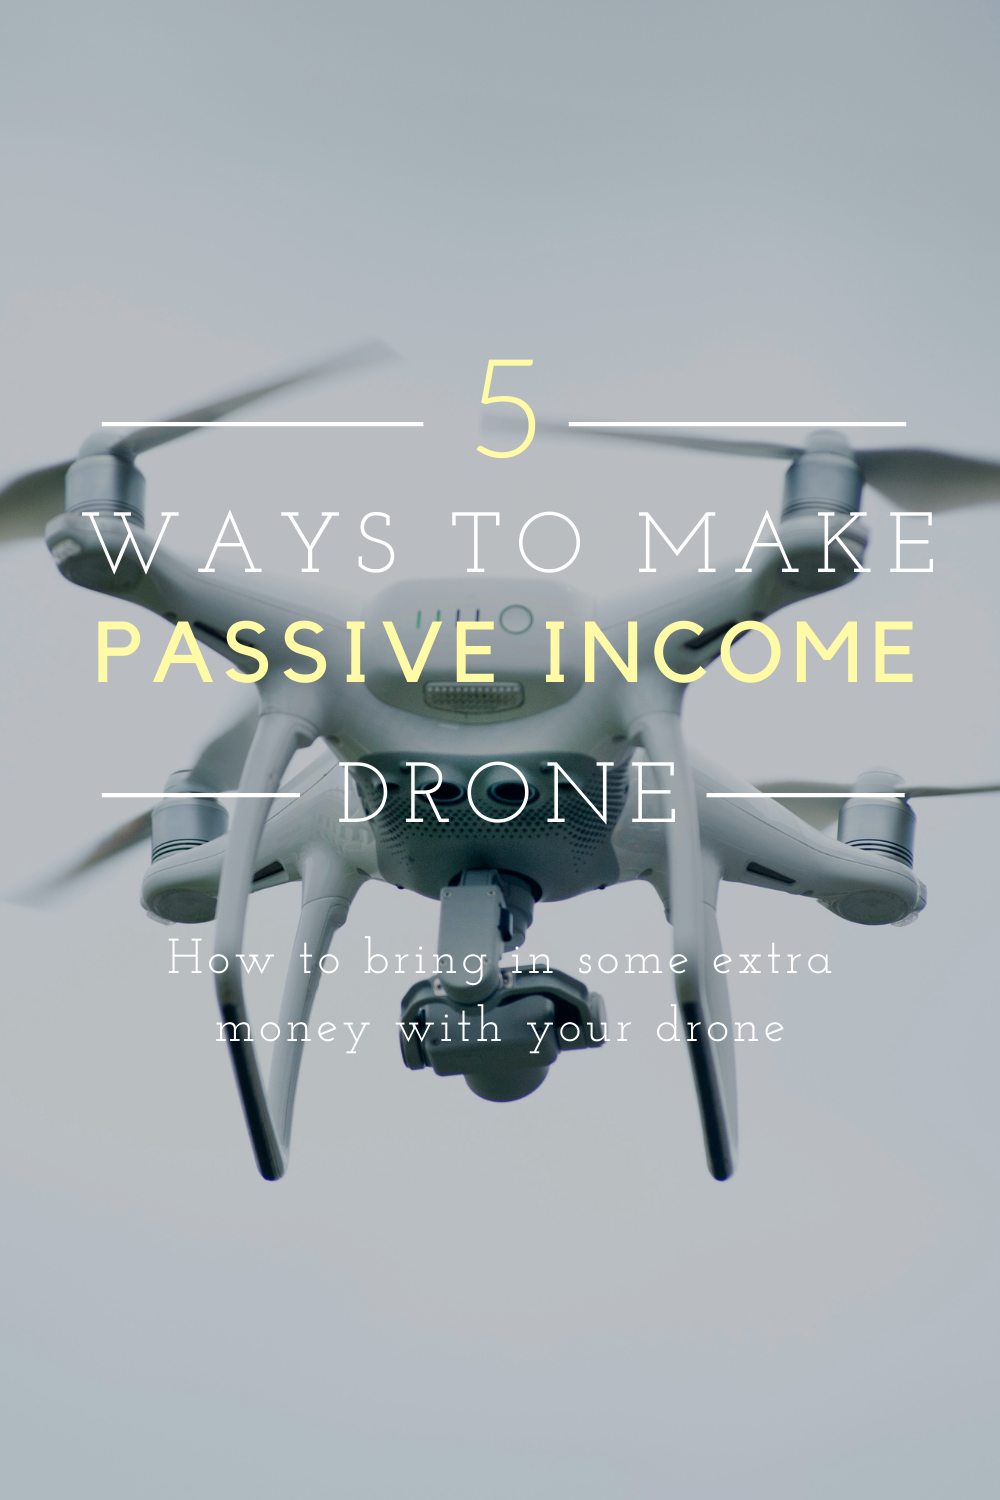 flying drone title says 5 ways to make passive income with your drone. how to bring in extra  money with your drone